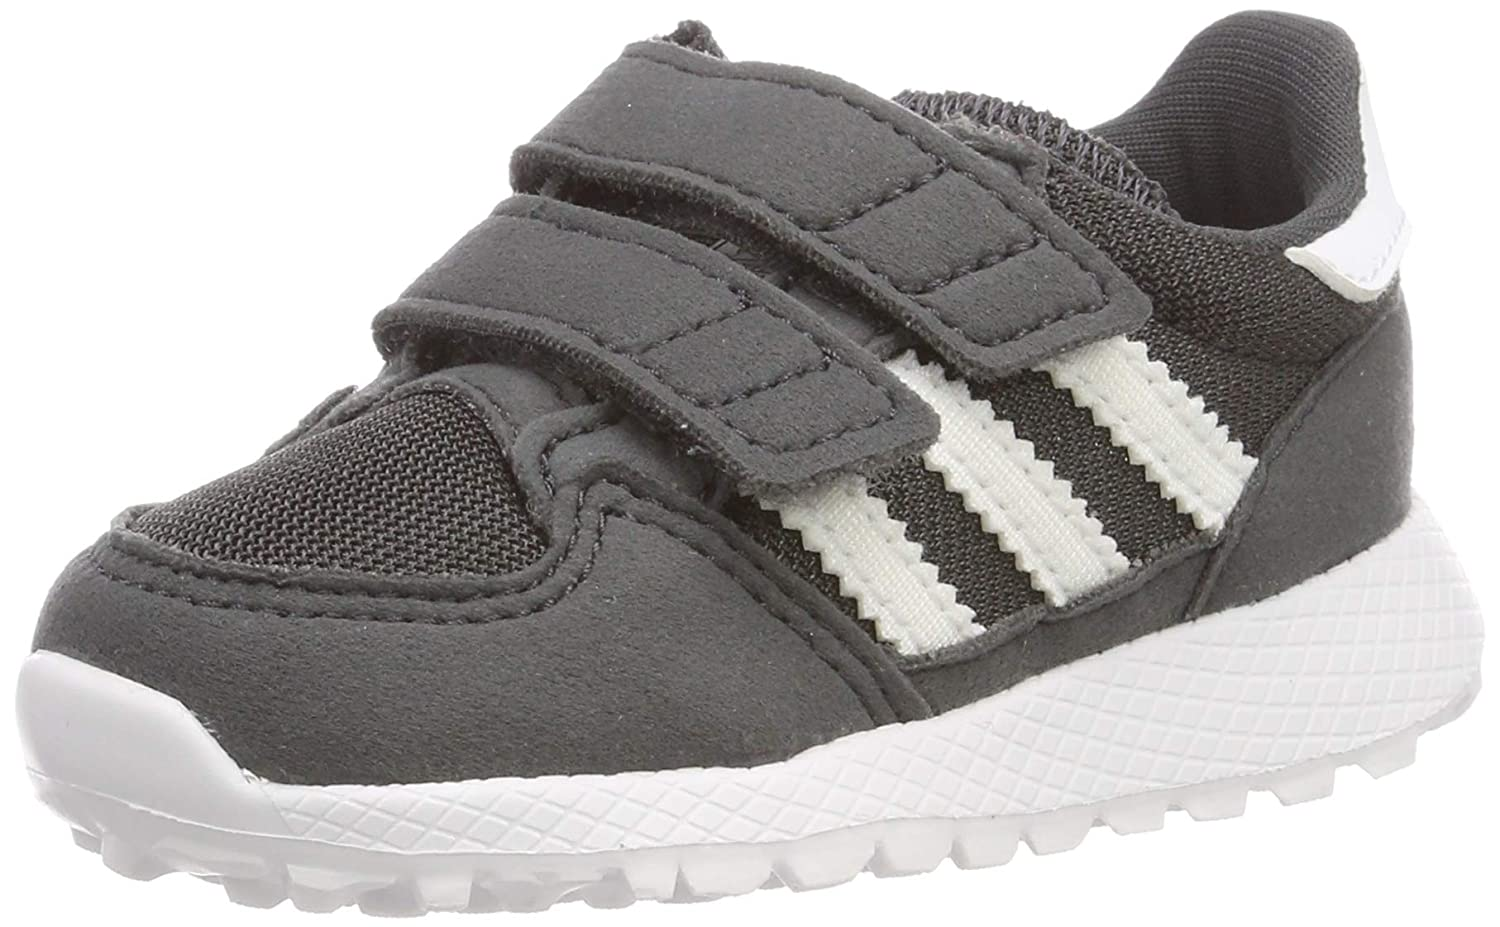 adidas Originals Forest Grove CF I Black Synthetic Suede Infant Trainers